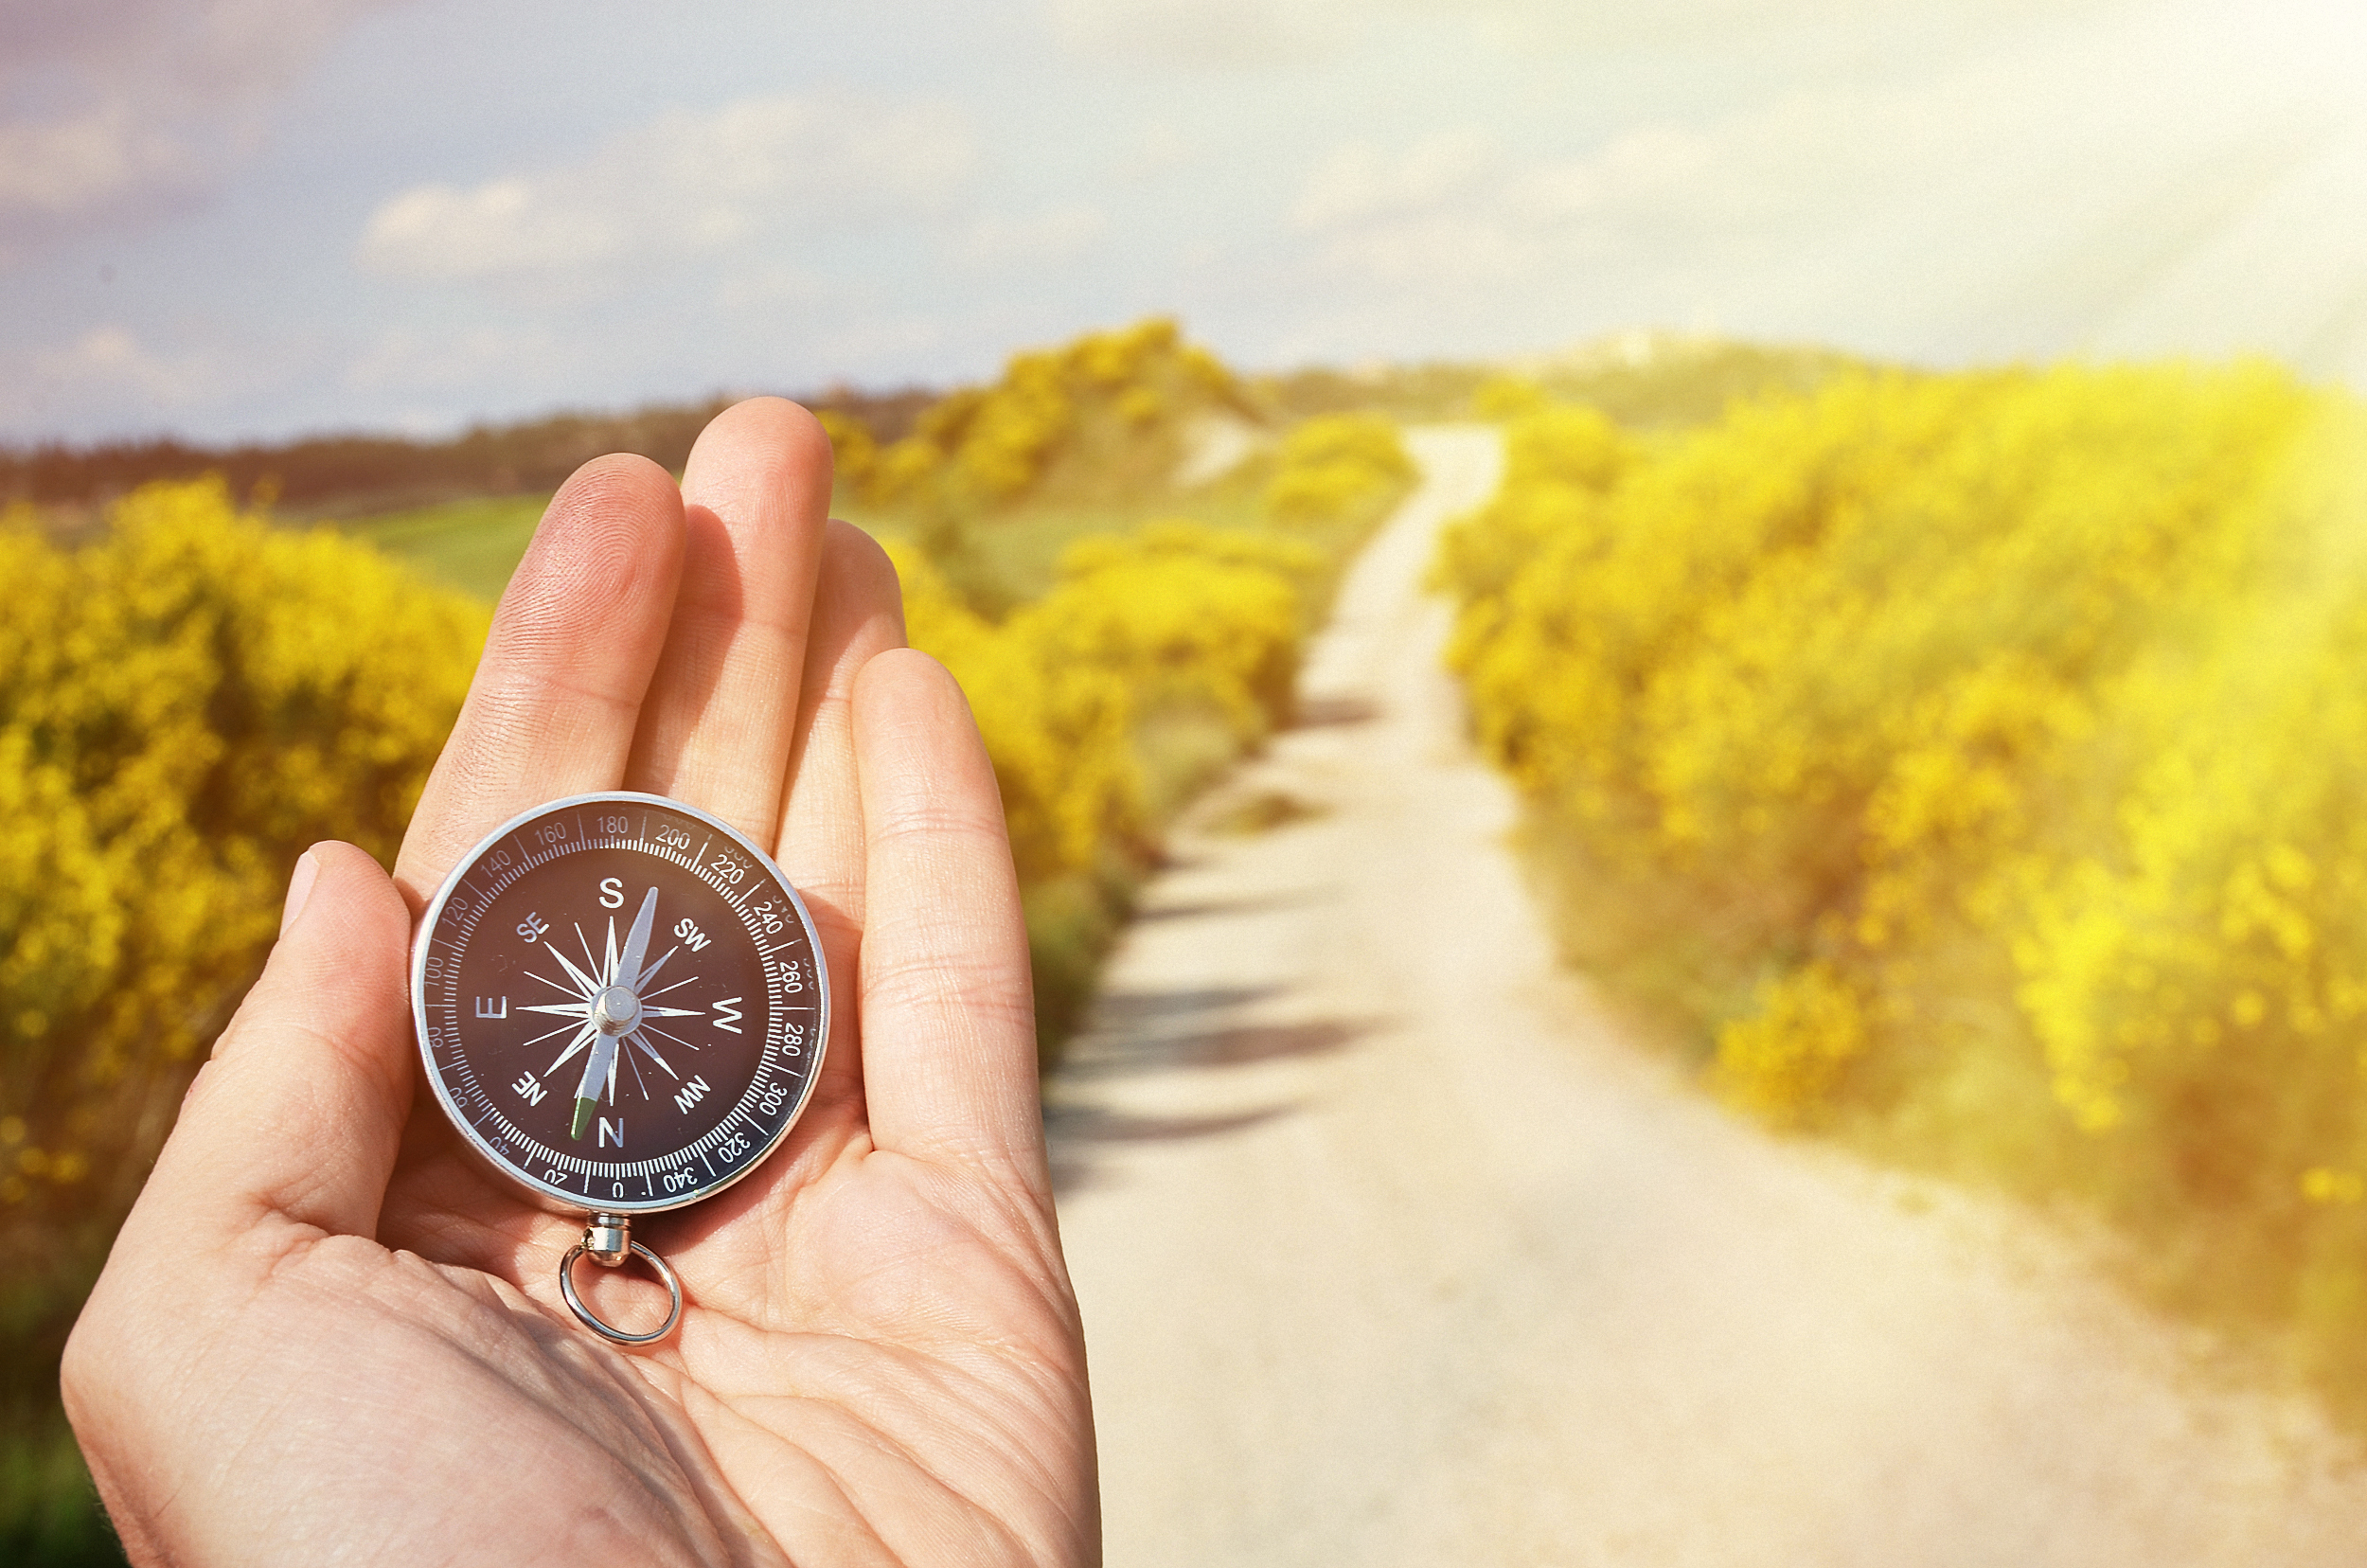 stock-photo-man-holding-a-compass-on-a-fork-in-the-road-on-a-decision-dilemma-direction-concept-472461472.jpg